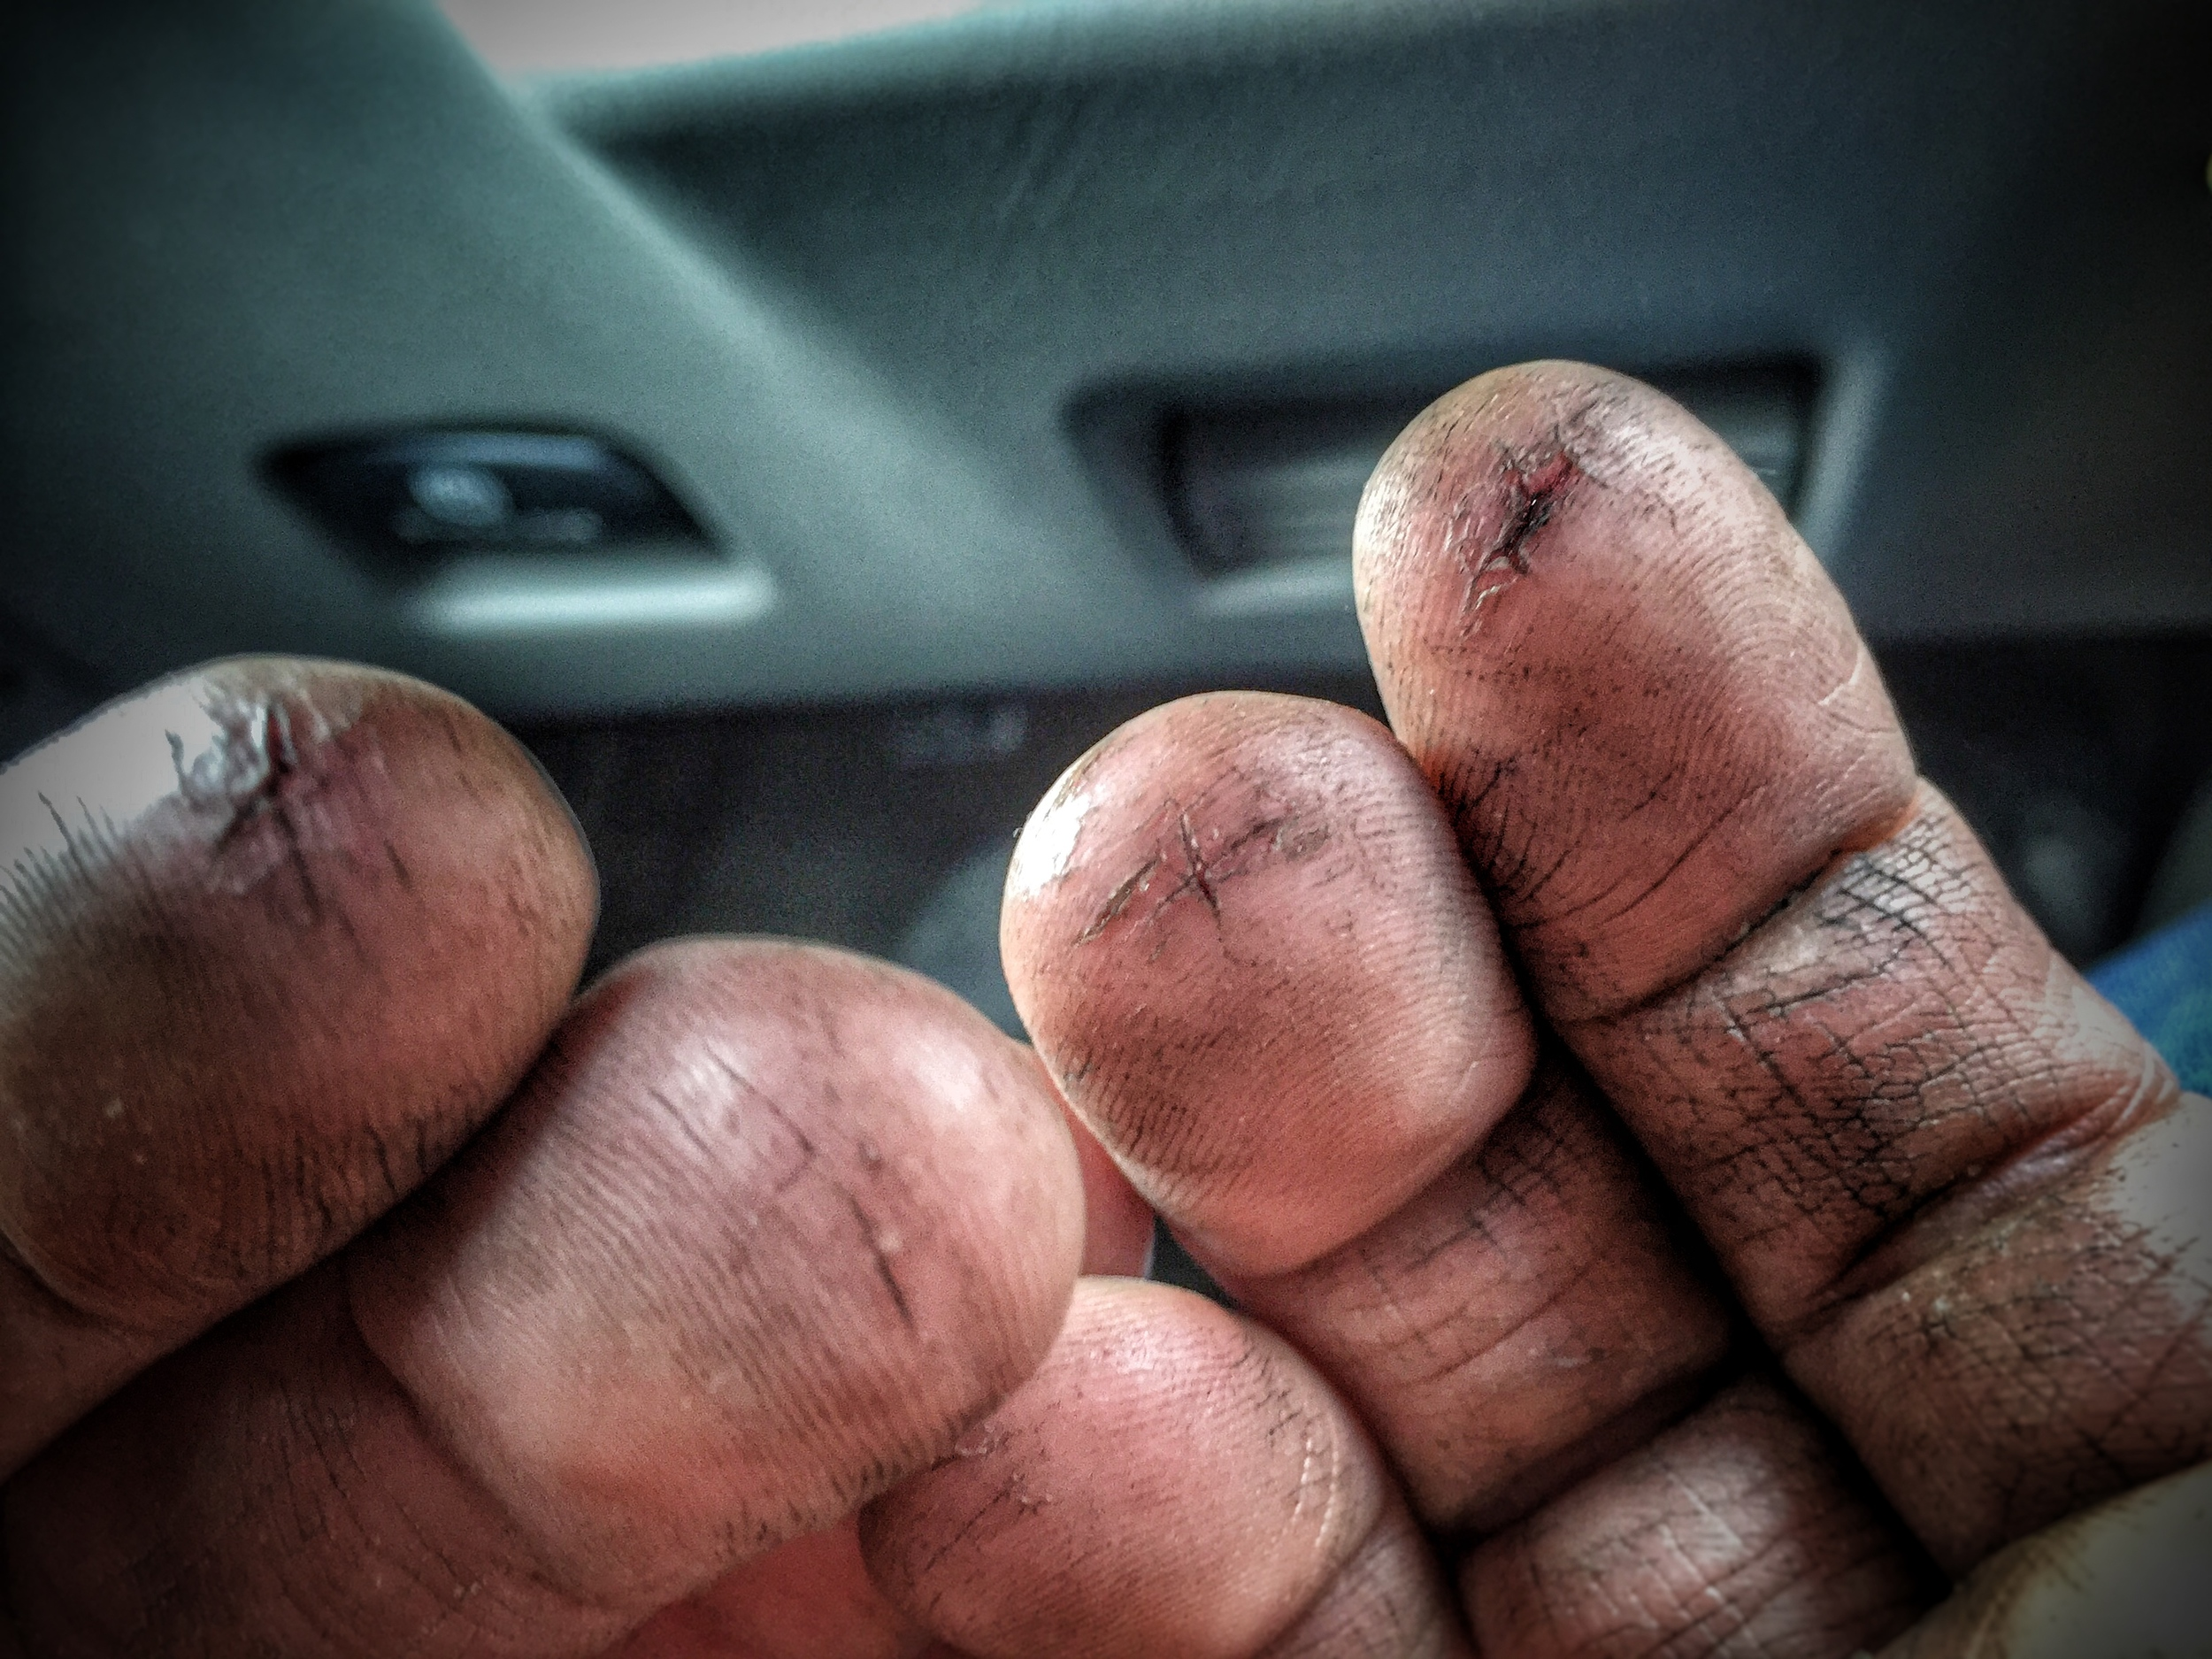 Fingers: Cracked and bleeding after a long and trying project in Maryland.